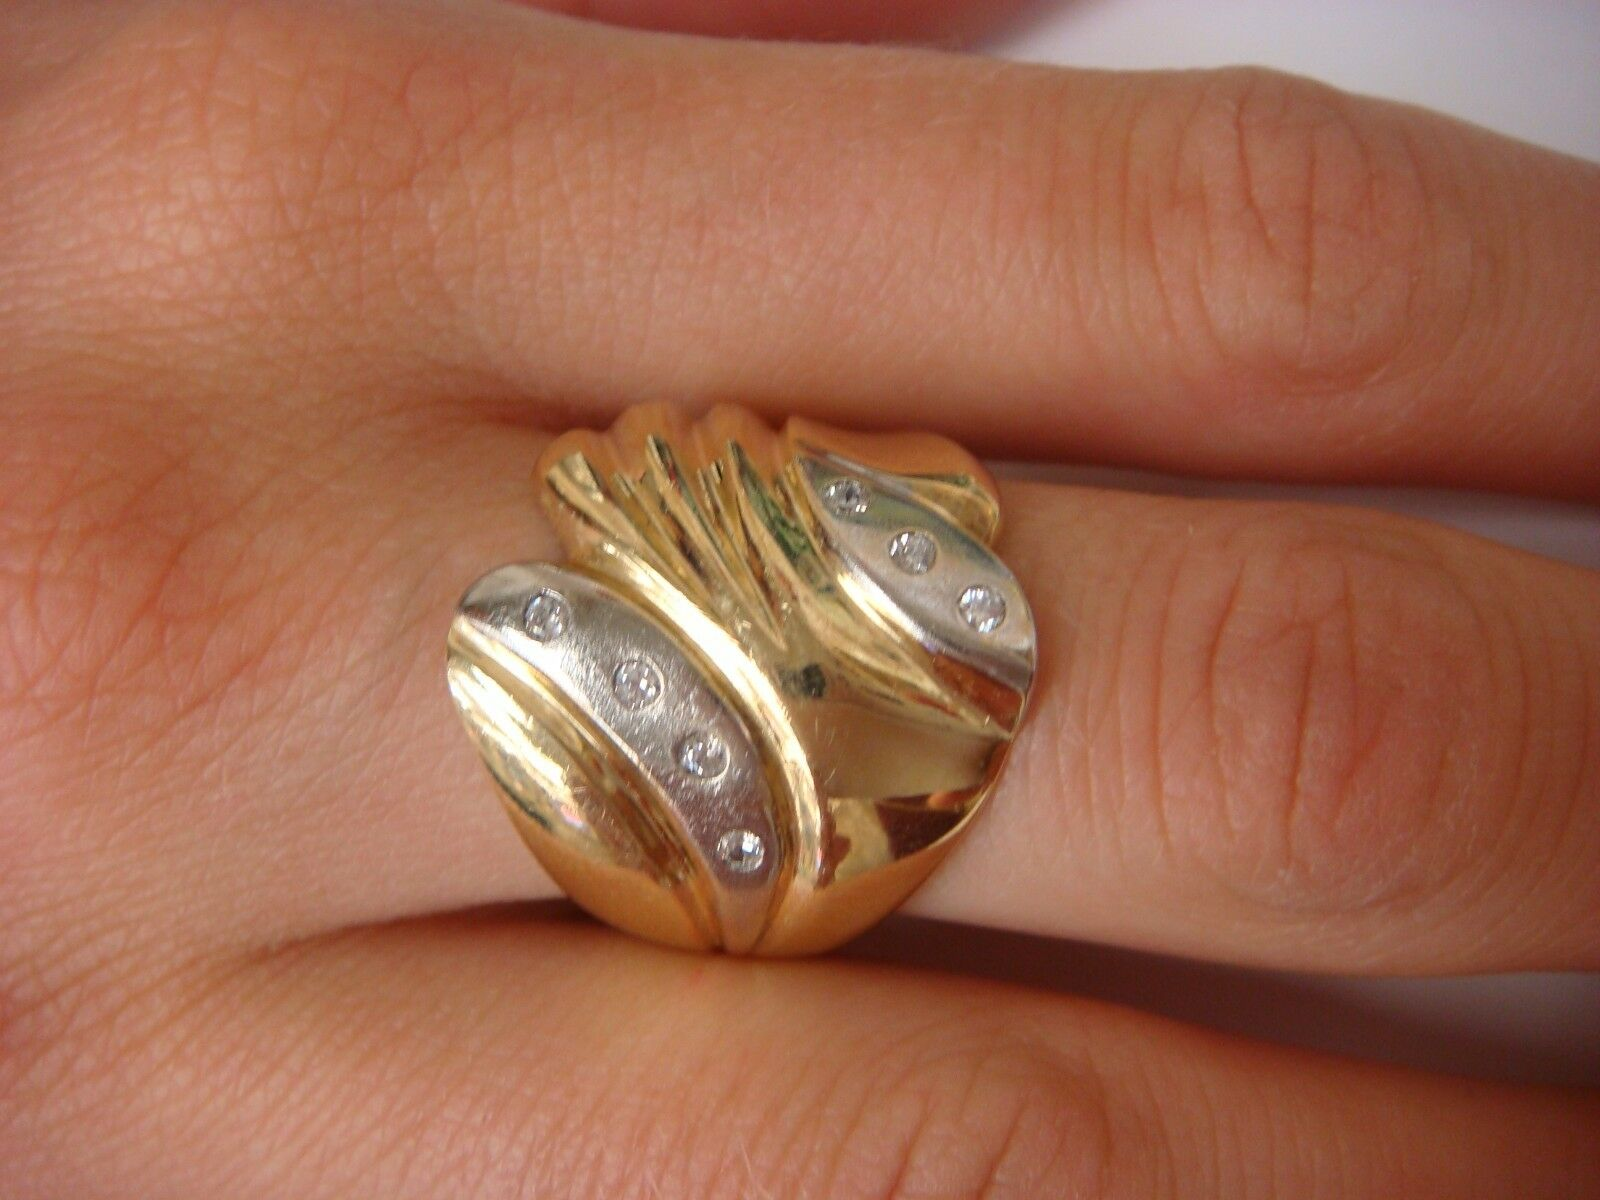 14K TWO TONE gold WIDE FREE STYLE LADIES DIAMOND RING, 7.6 GRAMS, 0.20 CT T.W.